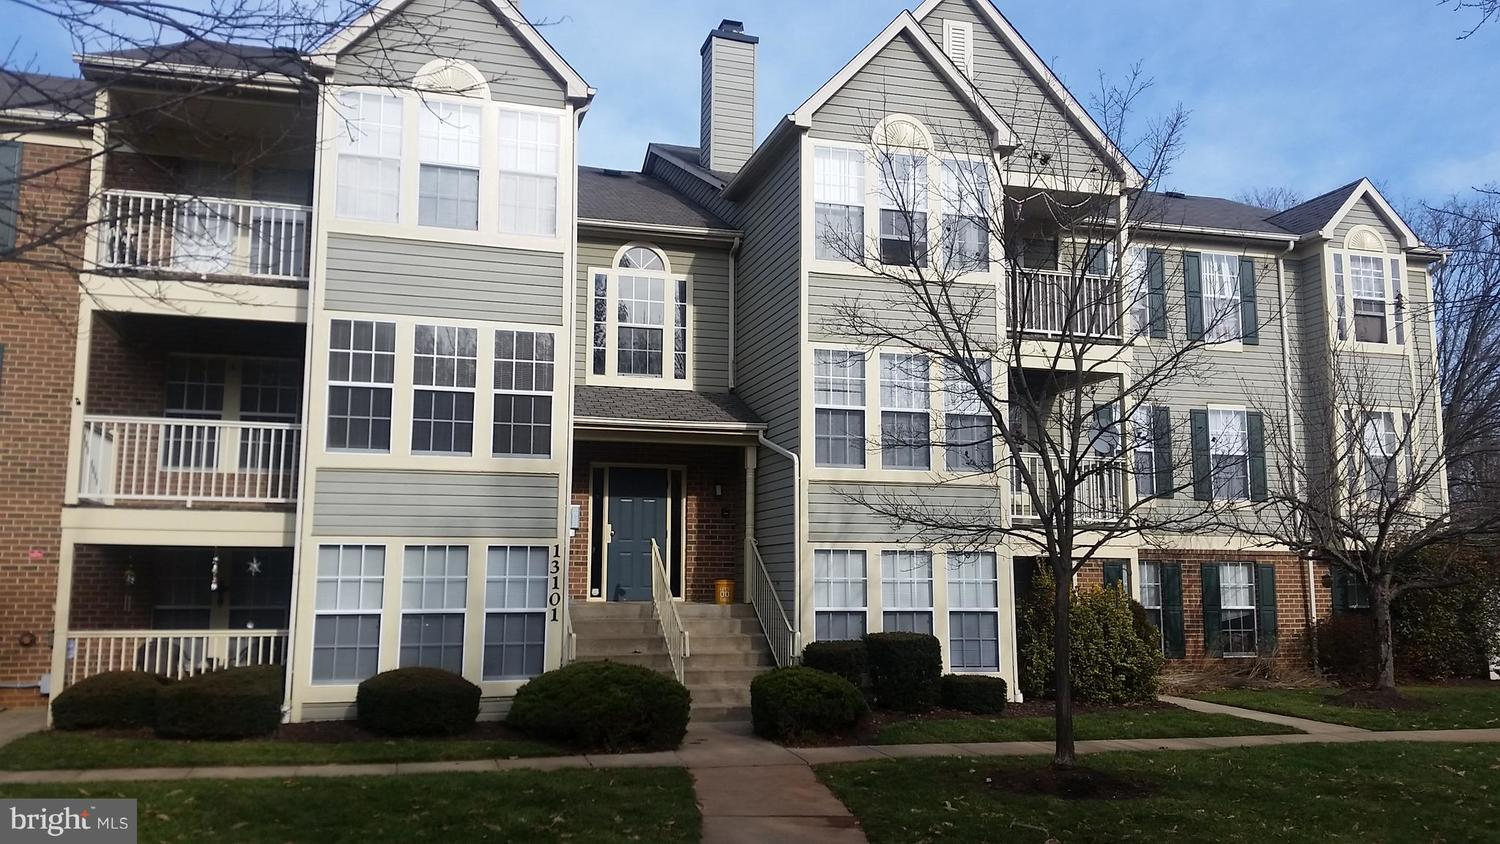 13101 Briarcliff Terrace, Unit 9905 Germantown, MD 20874